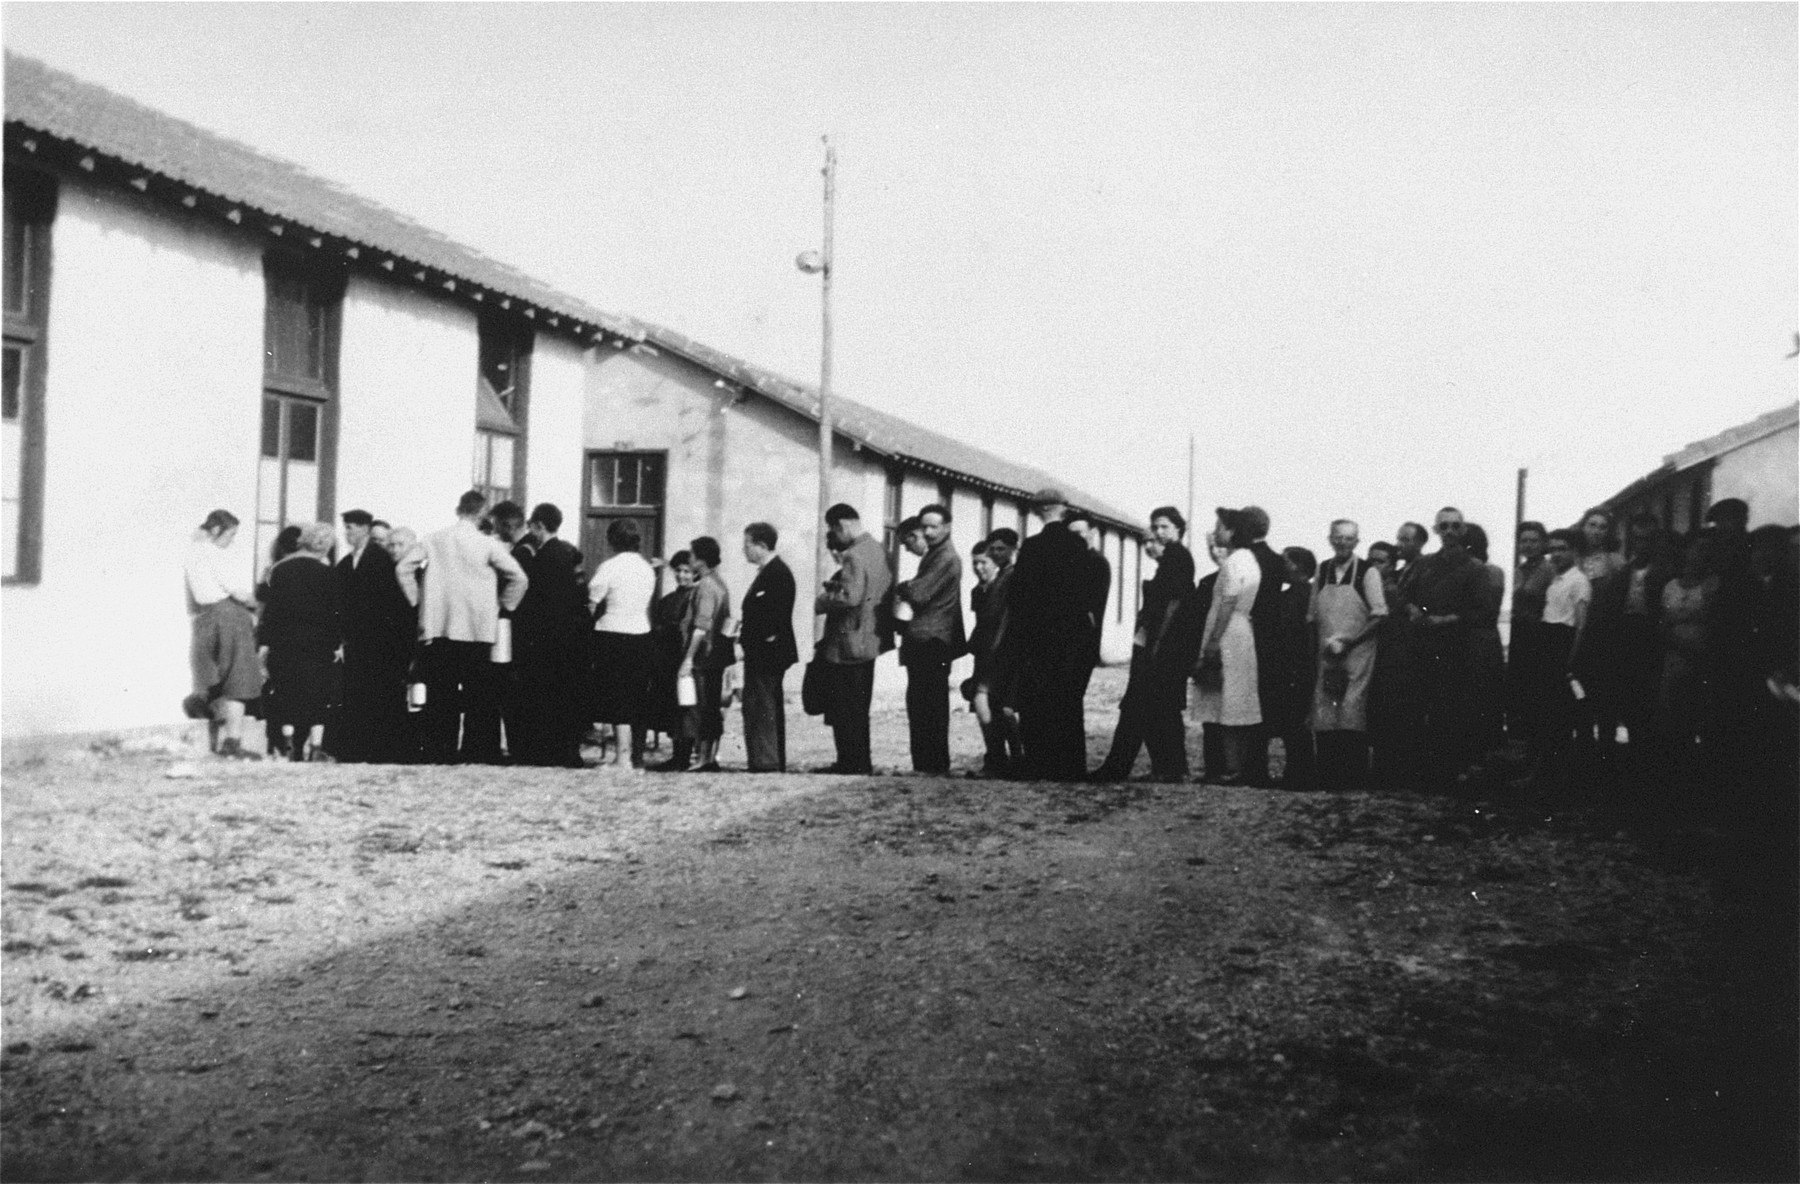 Prisoners in Rivesaltes on line for food distributed by relief agencies.